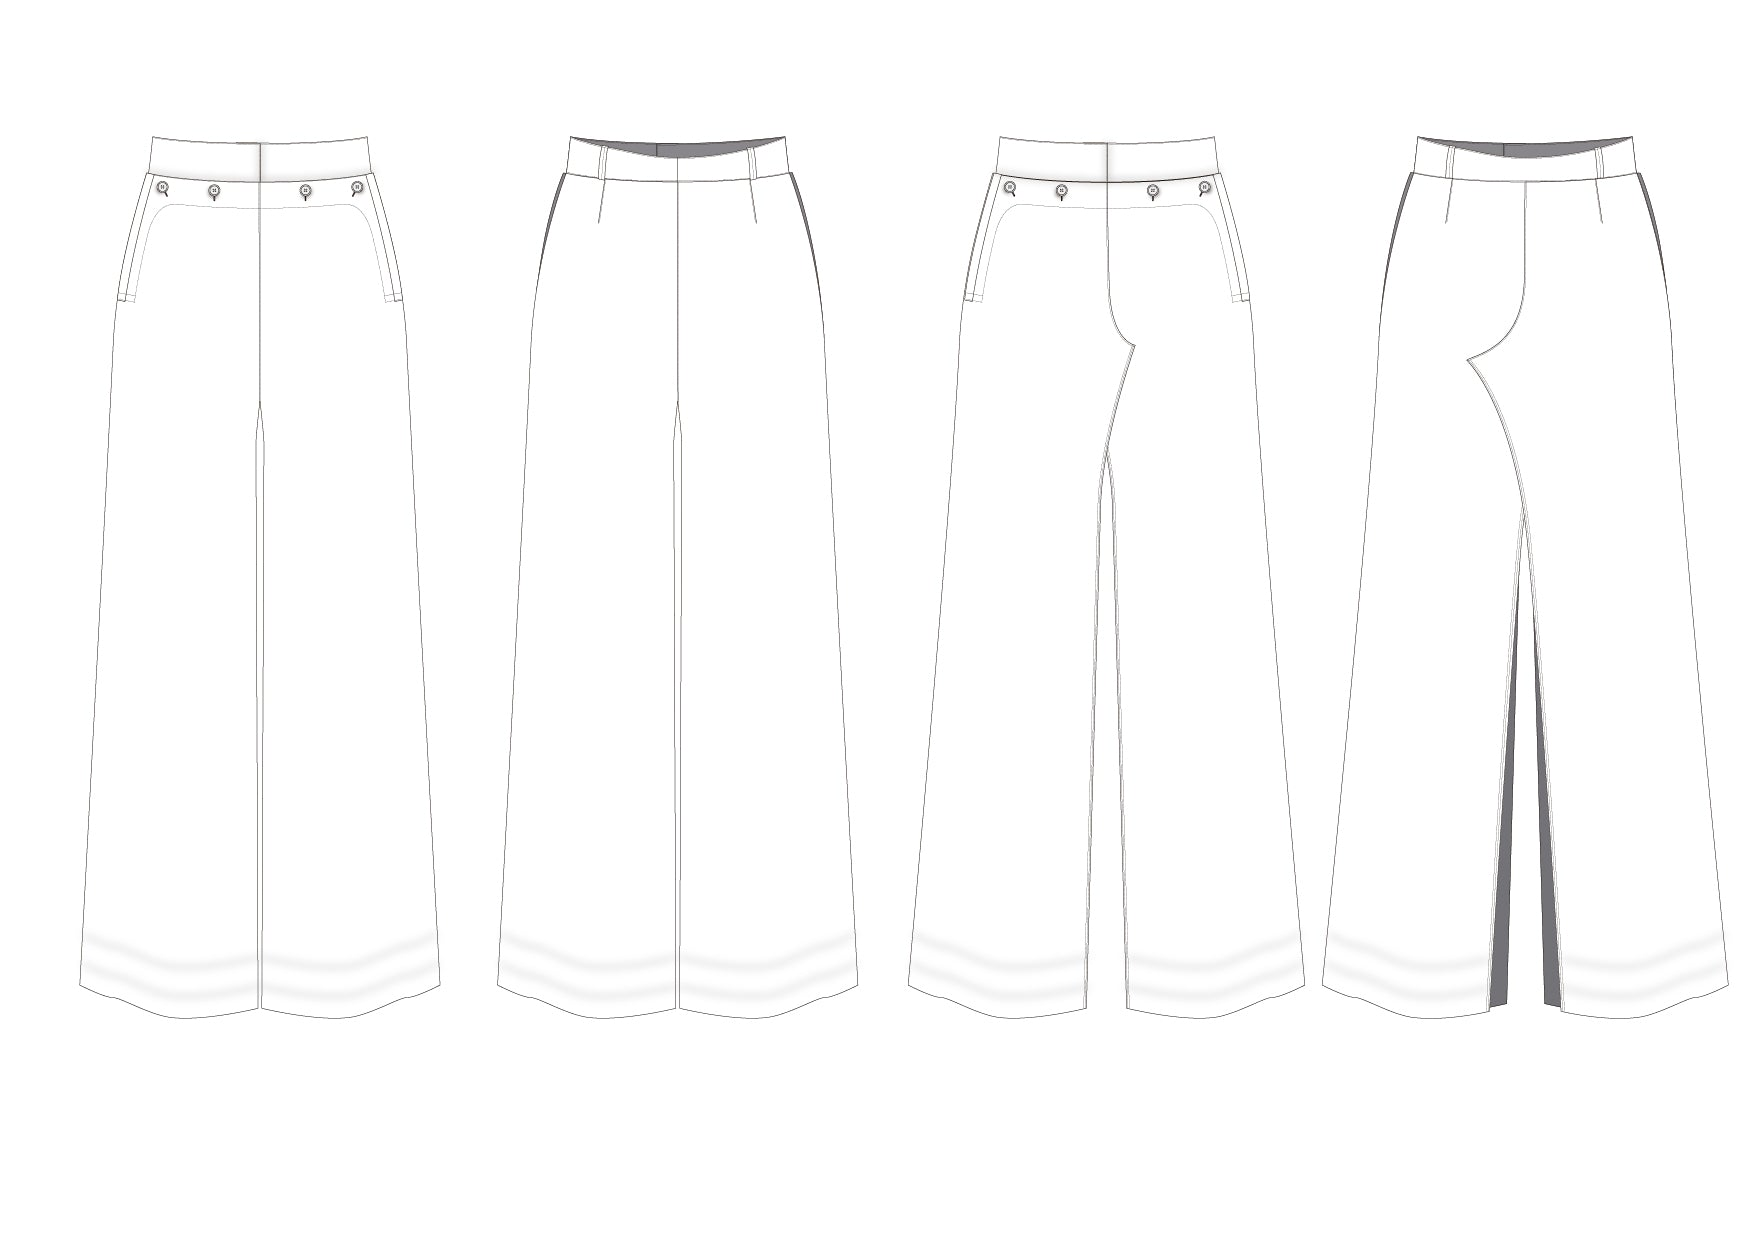 Trousers flat sketches - Click to download